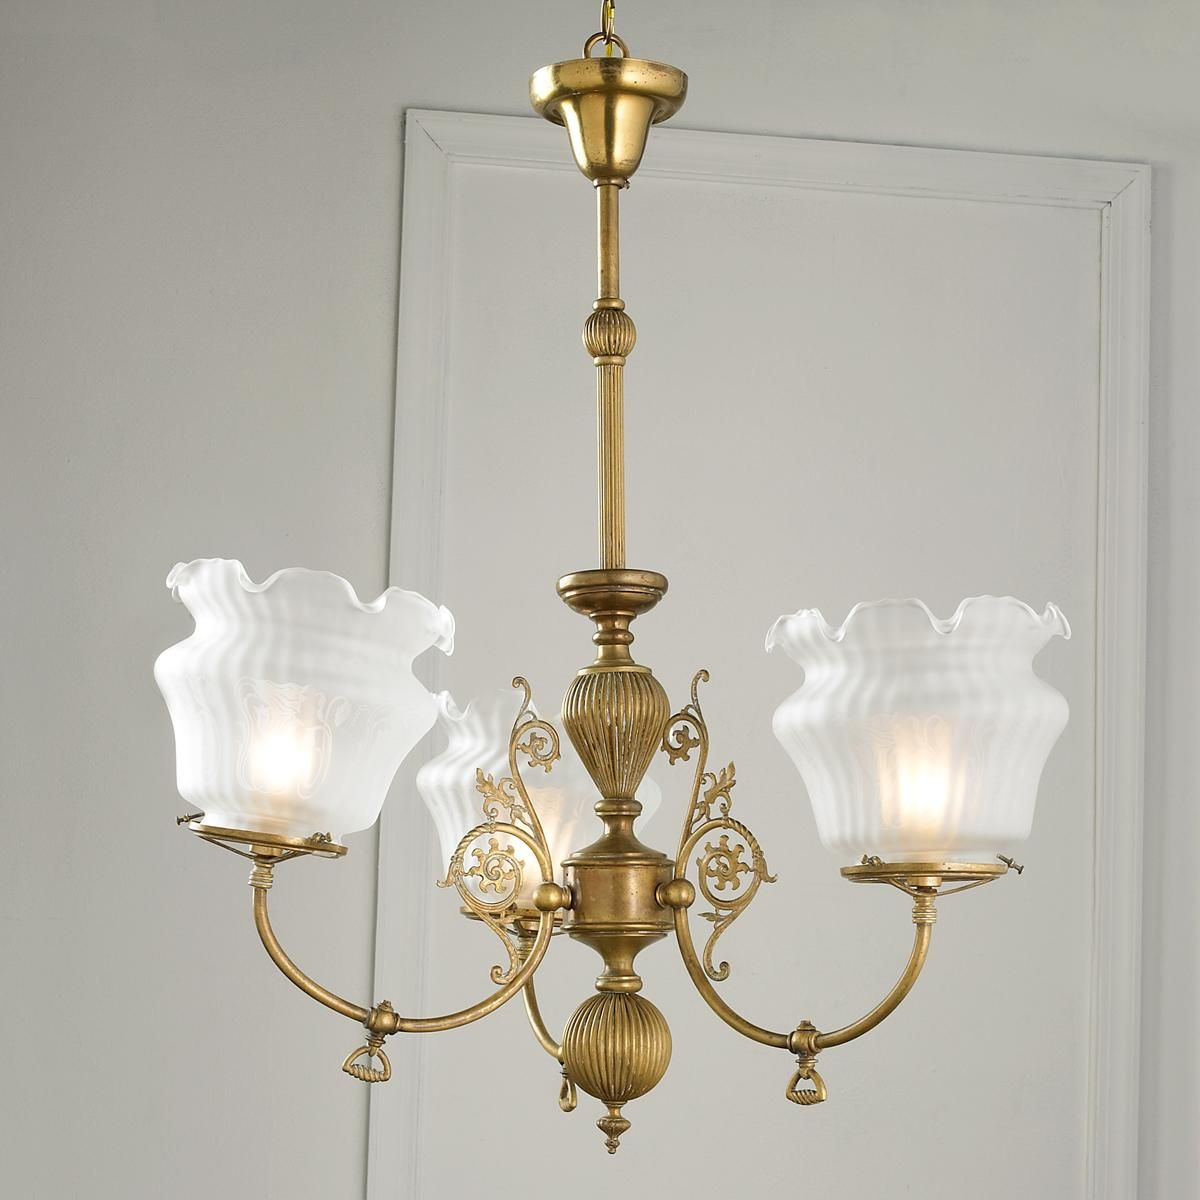 Converted antique gas chandelier lighting pinterest converted antique gas chandelier arubaitofo Images